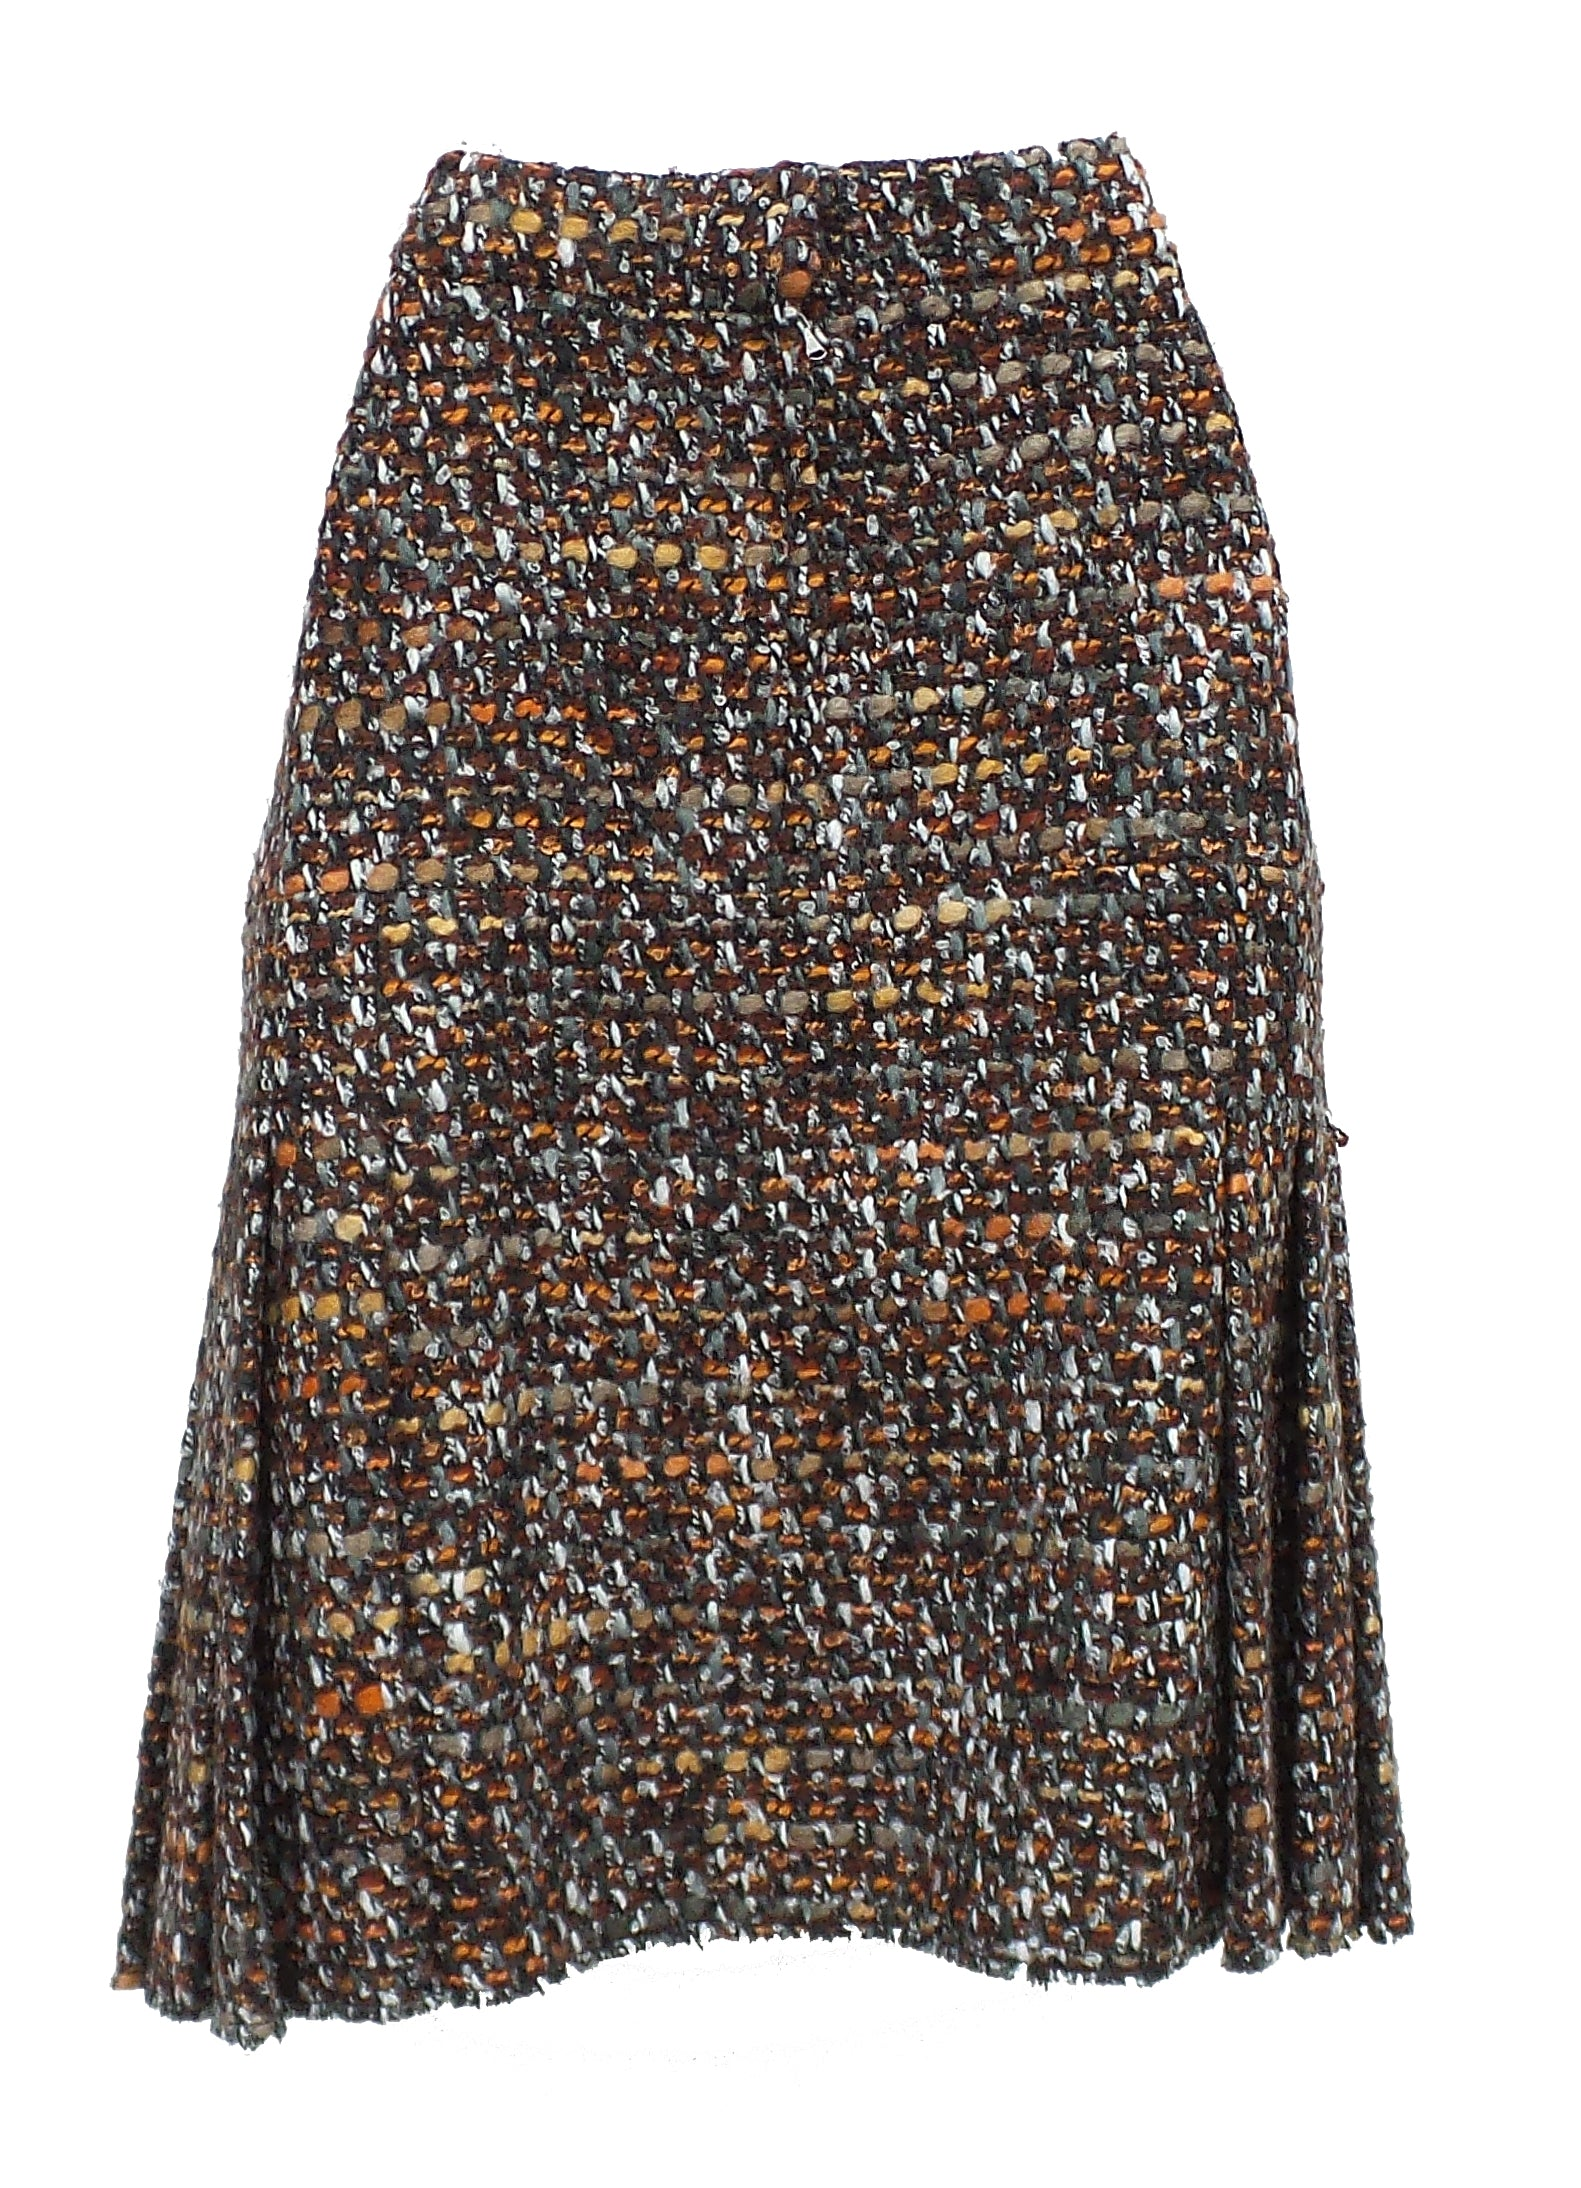 'Sold' DOLCE & GABBANA Copper Brown Multi Boucle Tweed Fringe Hem Pleated Skirt 42